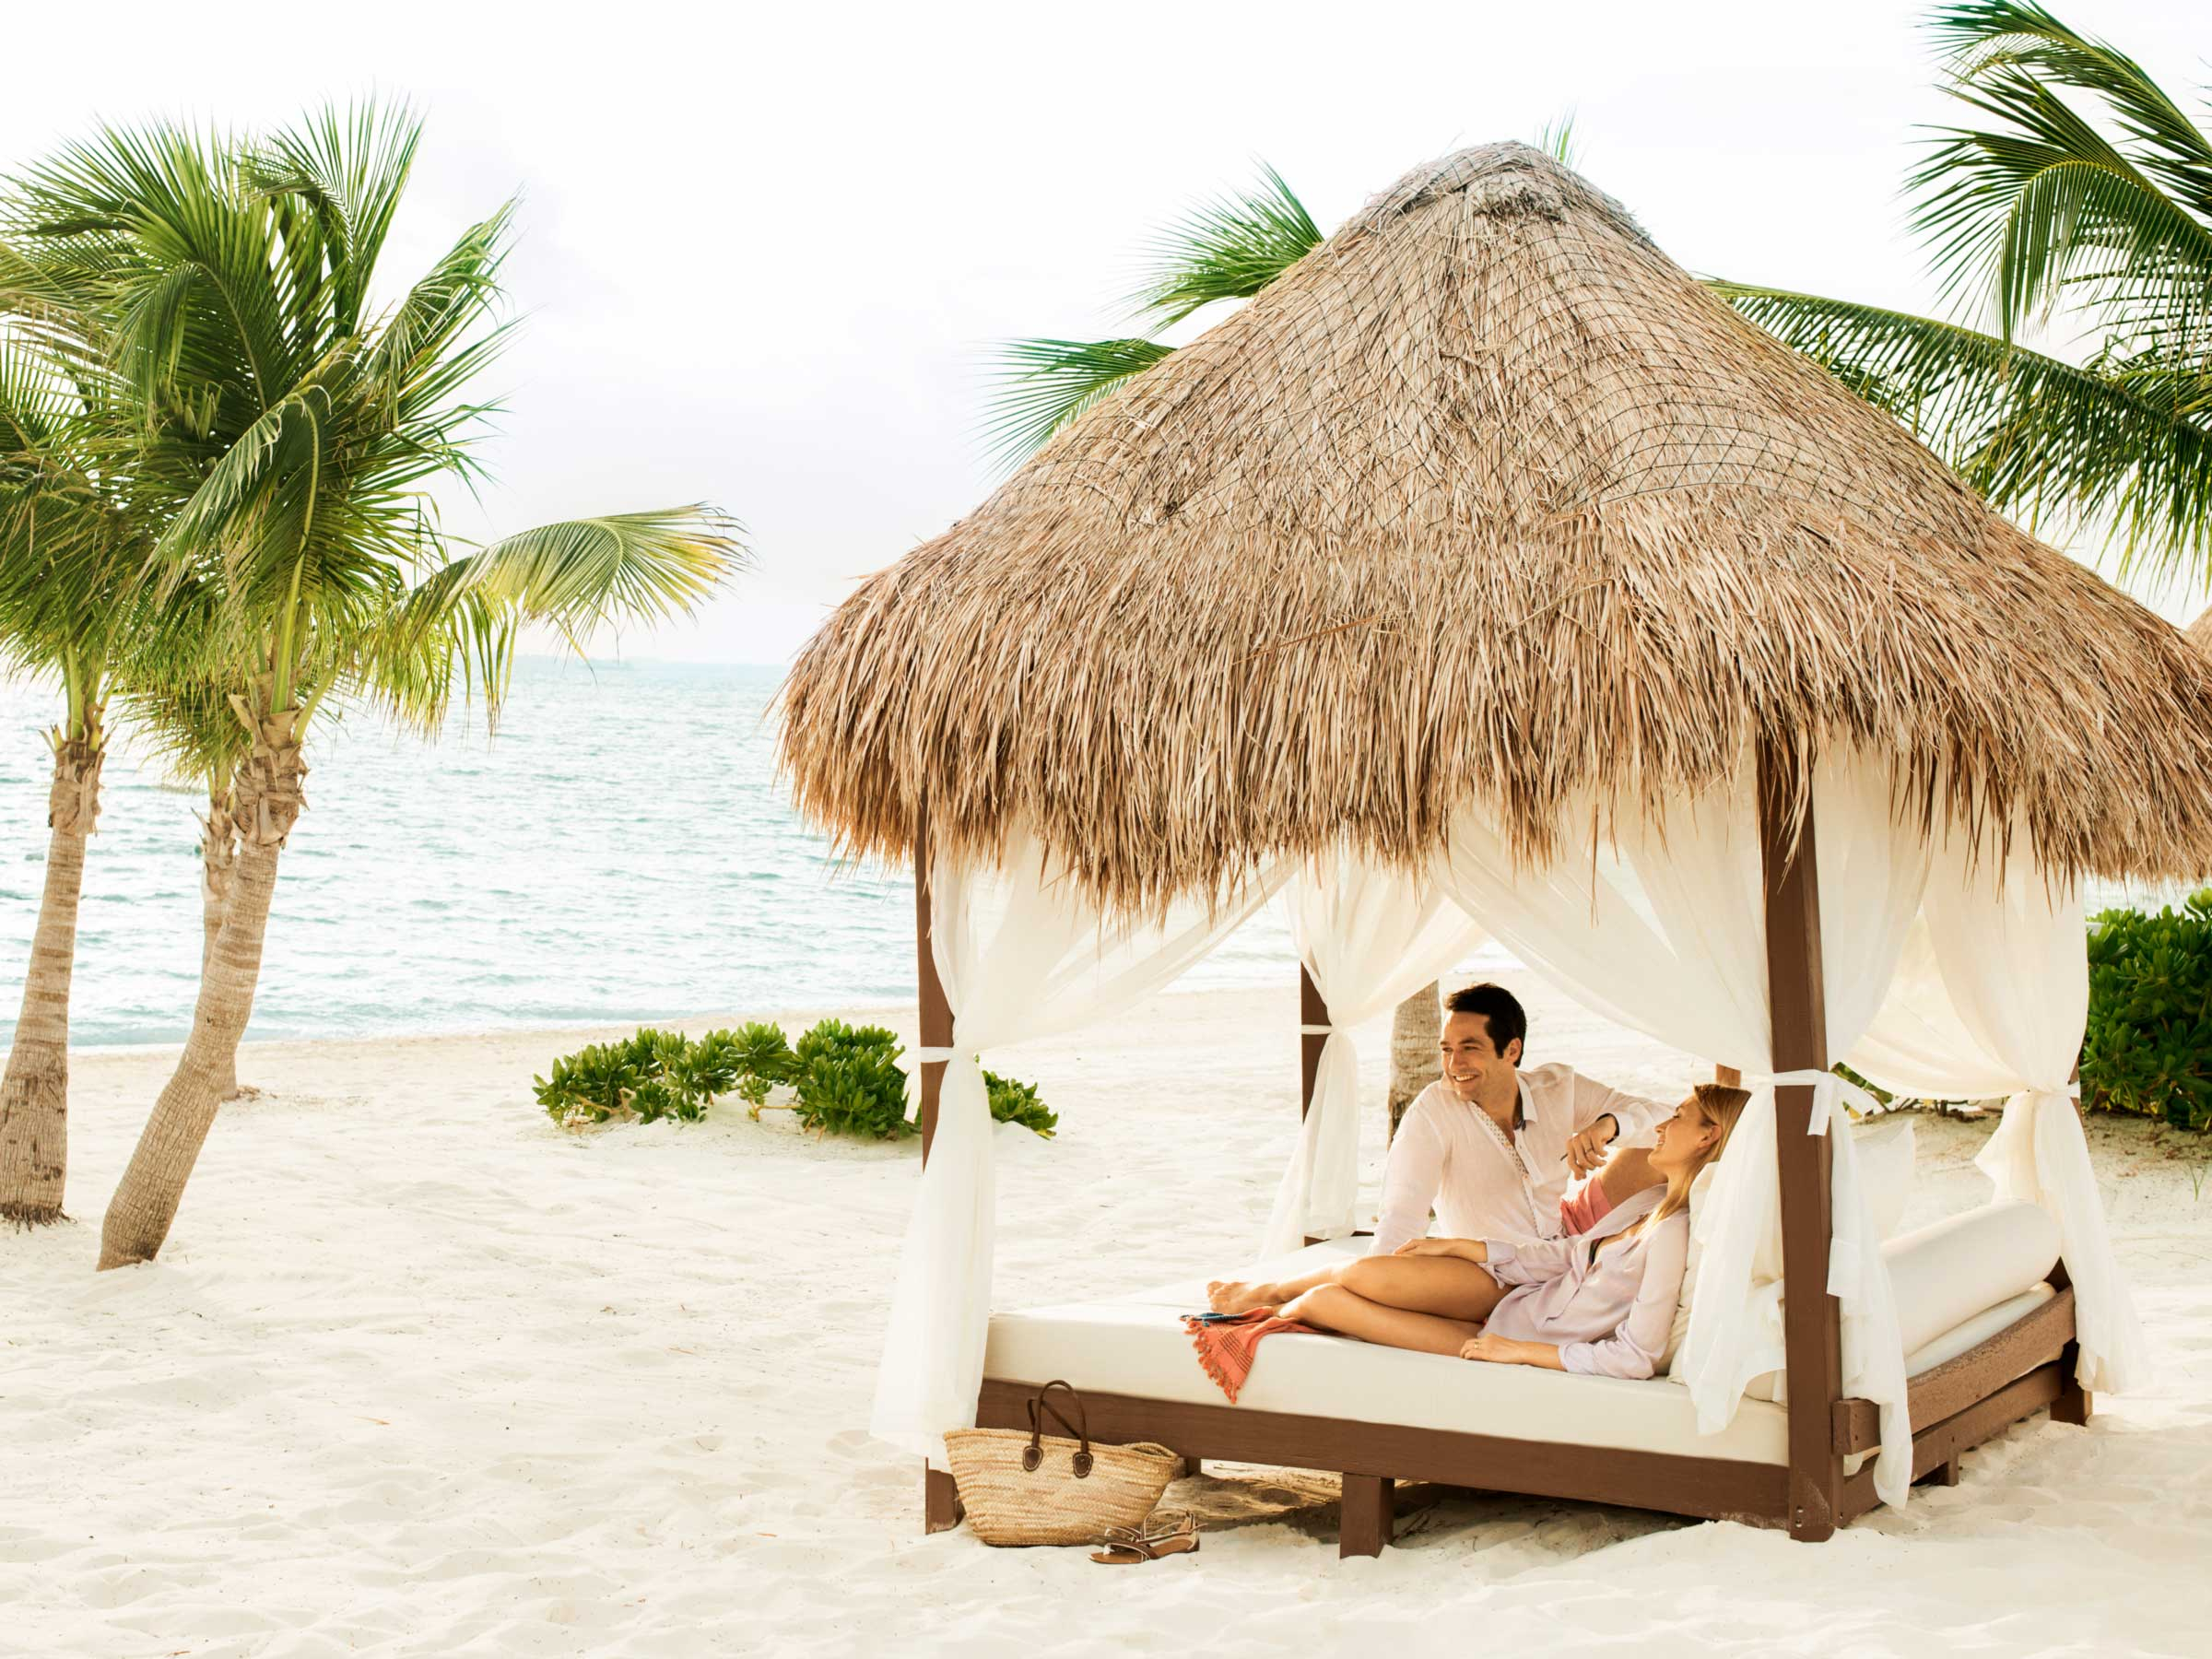 Take Advantage of our Cancun Beach Resort Discounts